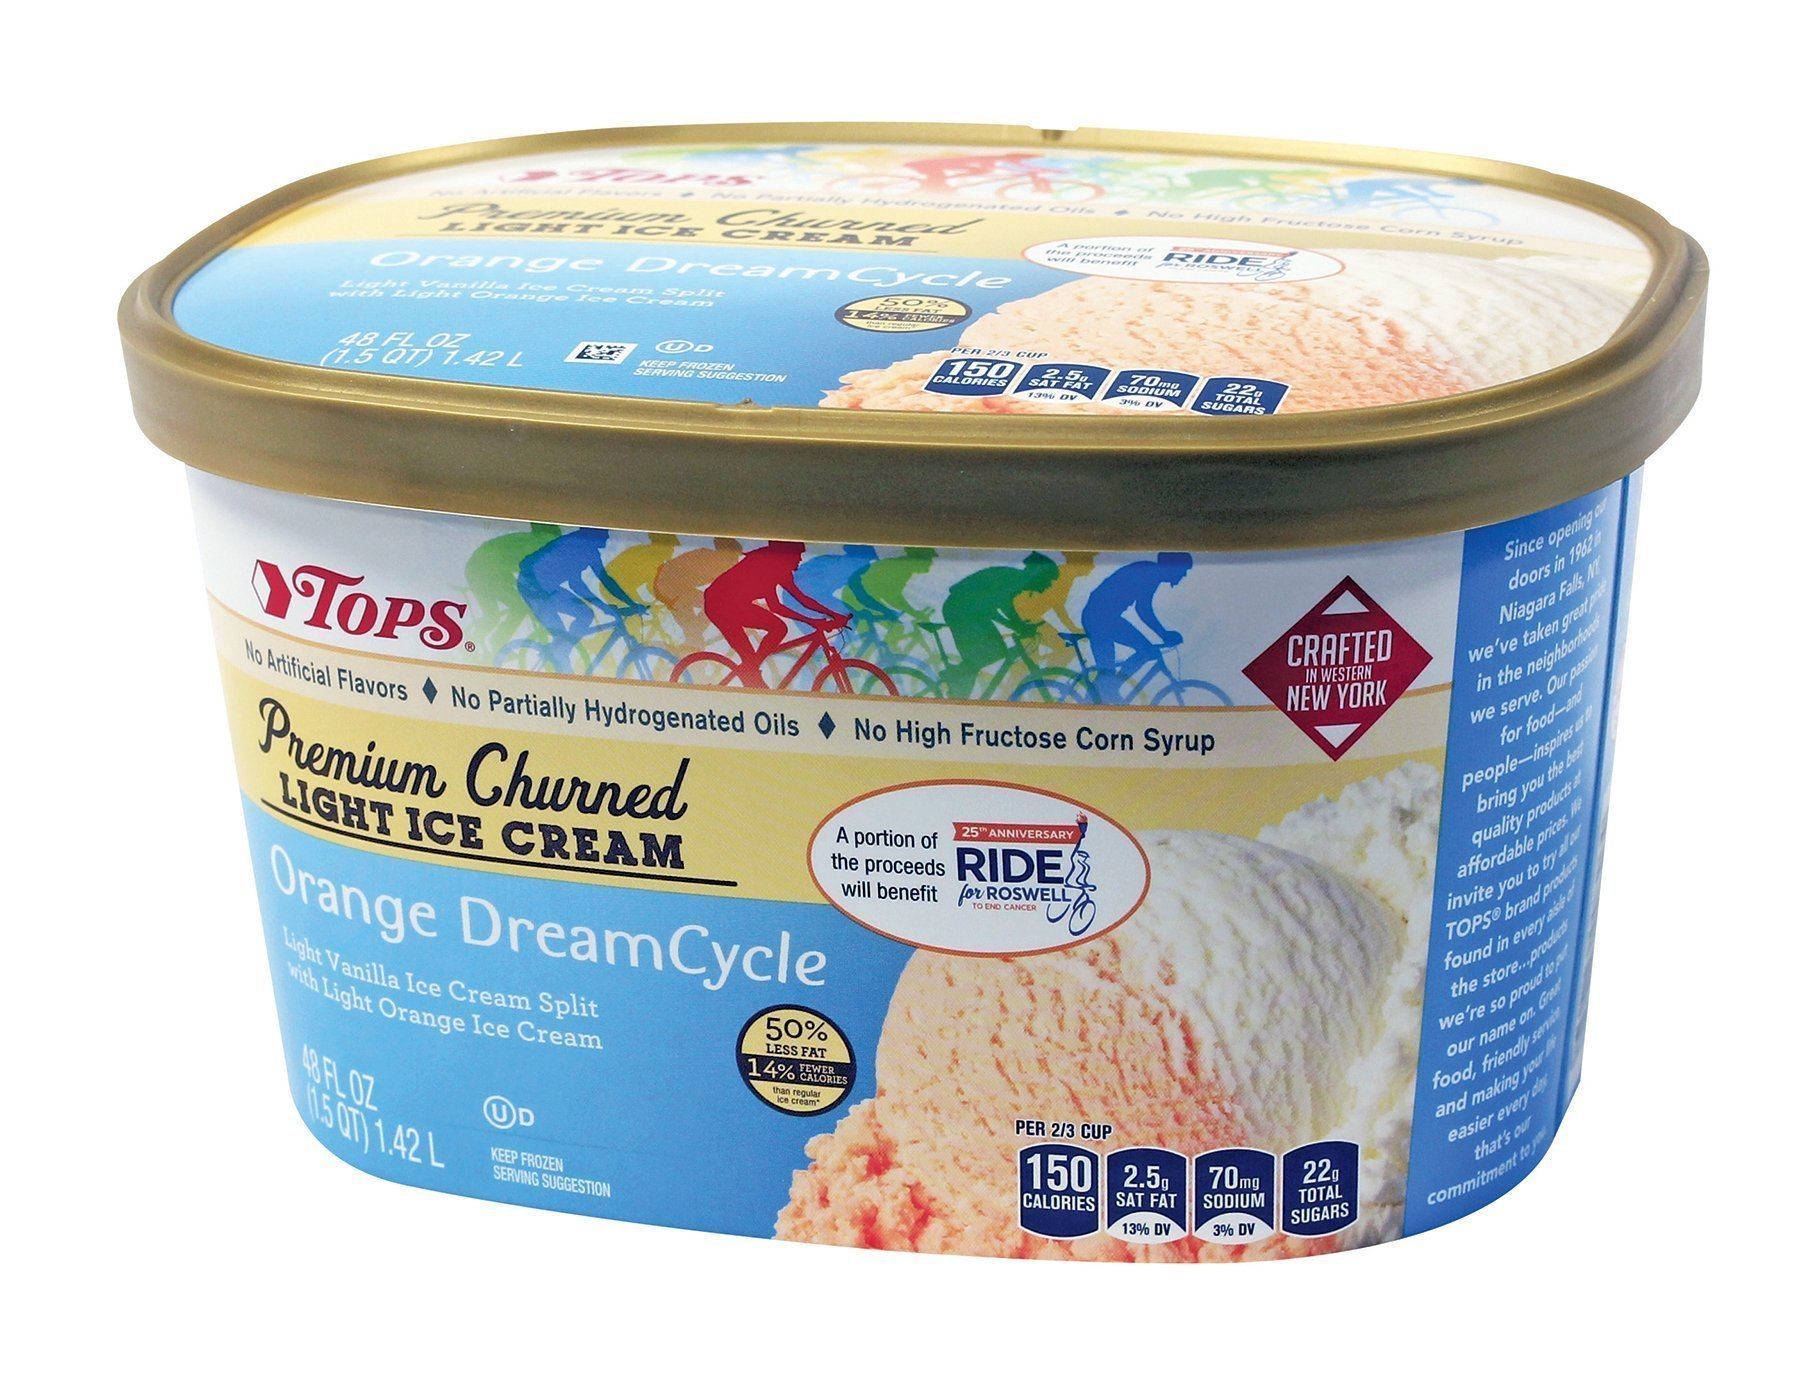 Introducing Orange DreamCycle – the Ride's 25th Anniversary Ice Cream